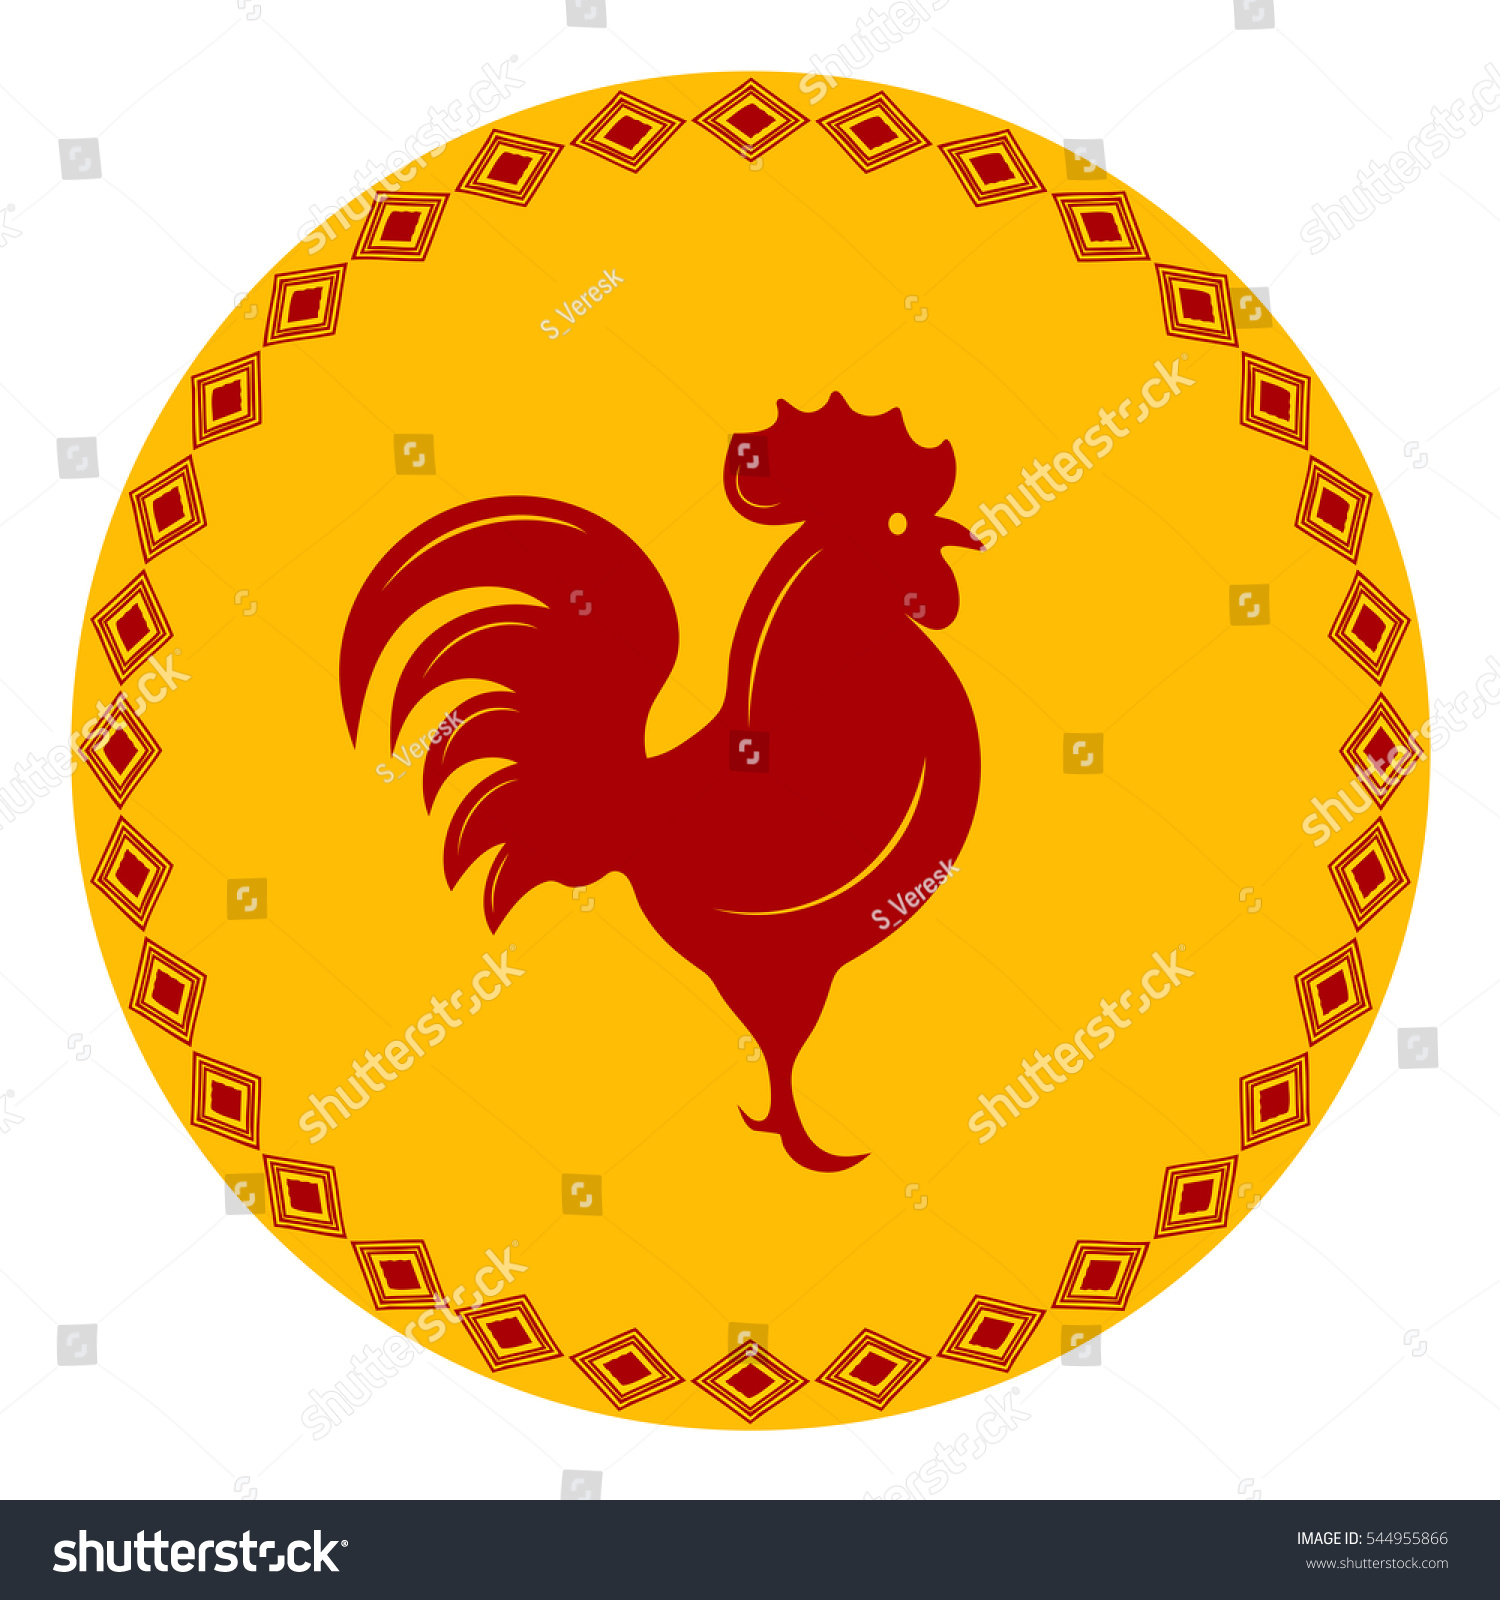 Red Rooster Frame Ornament Stock Vector HD (Royalty Free) 544955866 ...